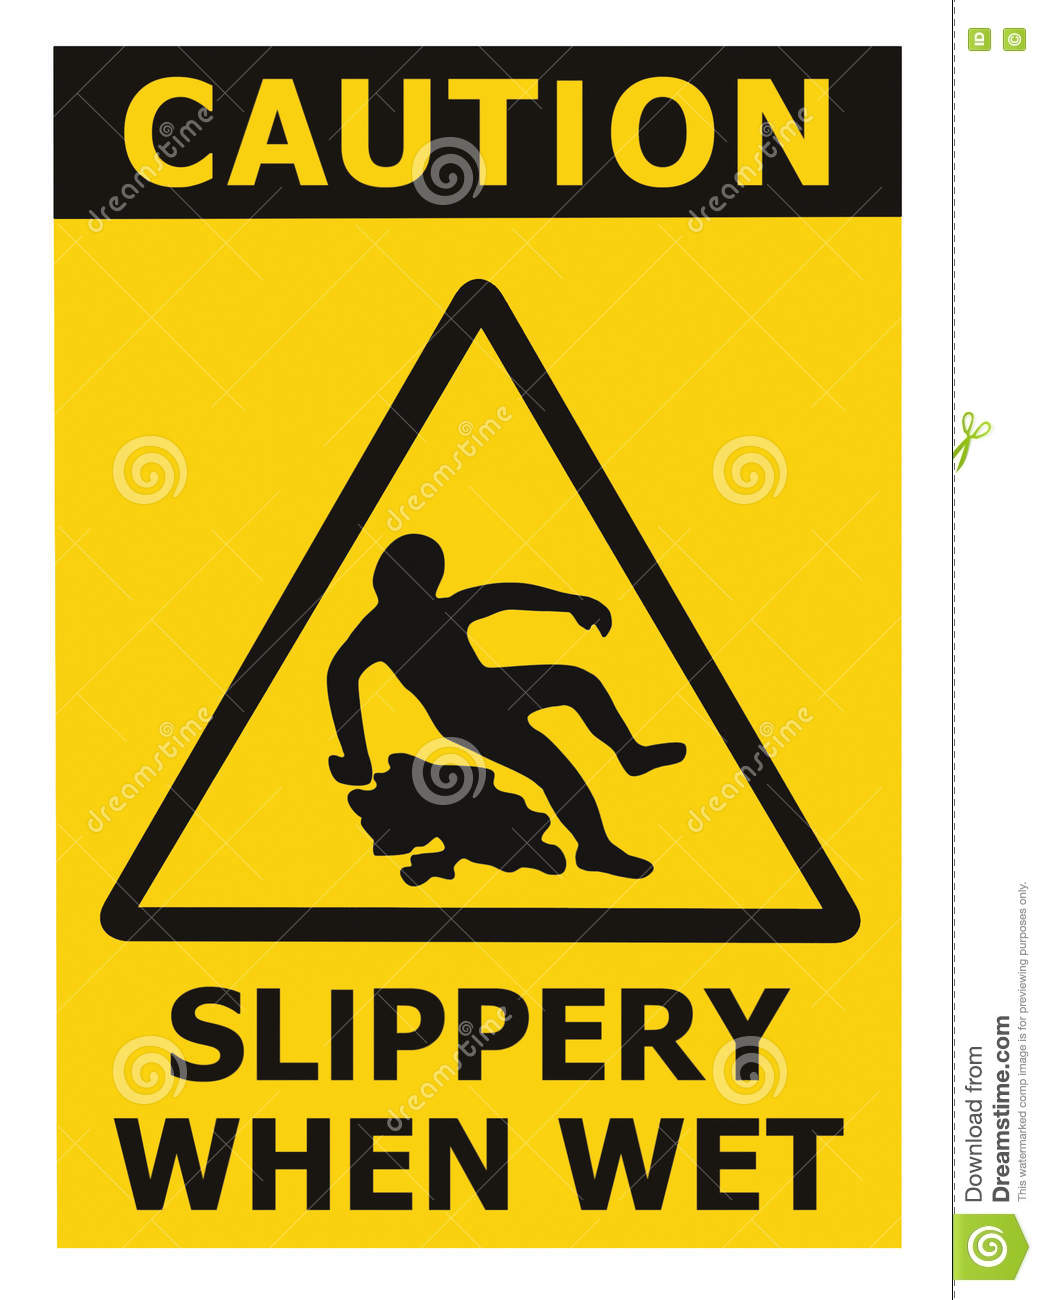 Caution Slippery When Wet Text Sign Black Yellow Isolated